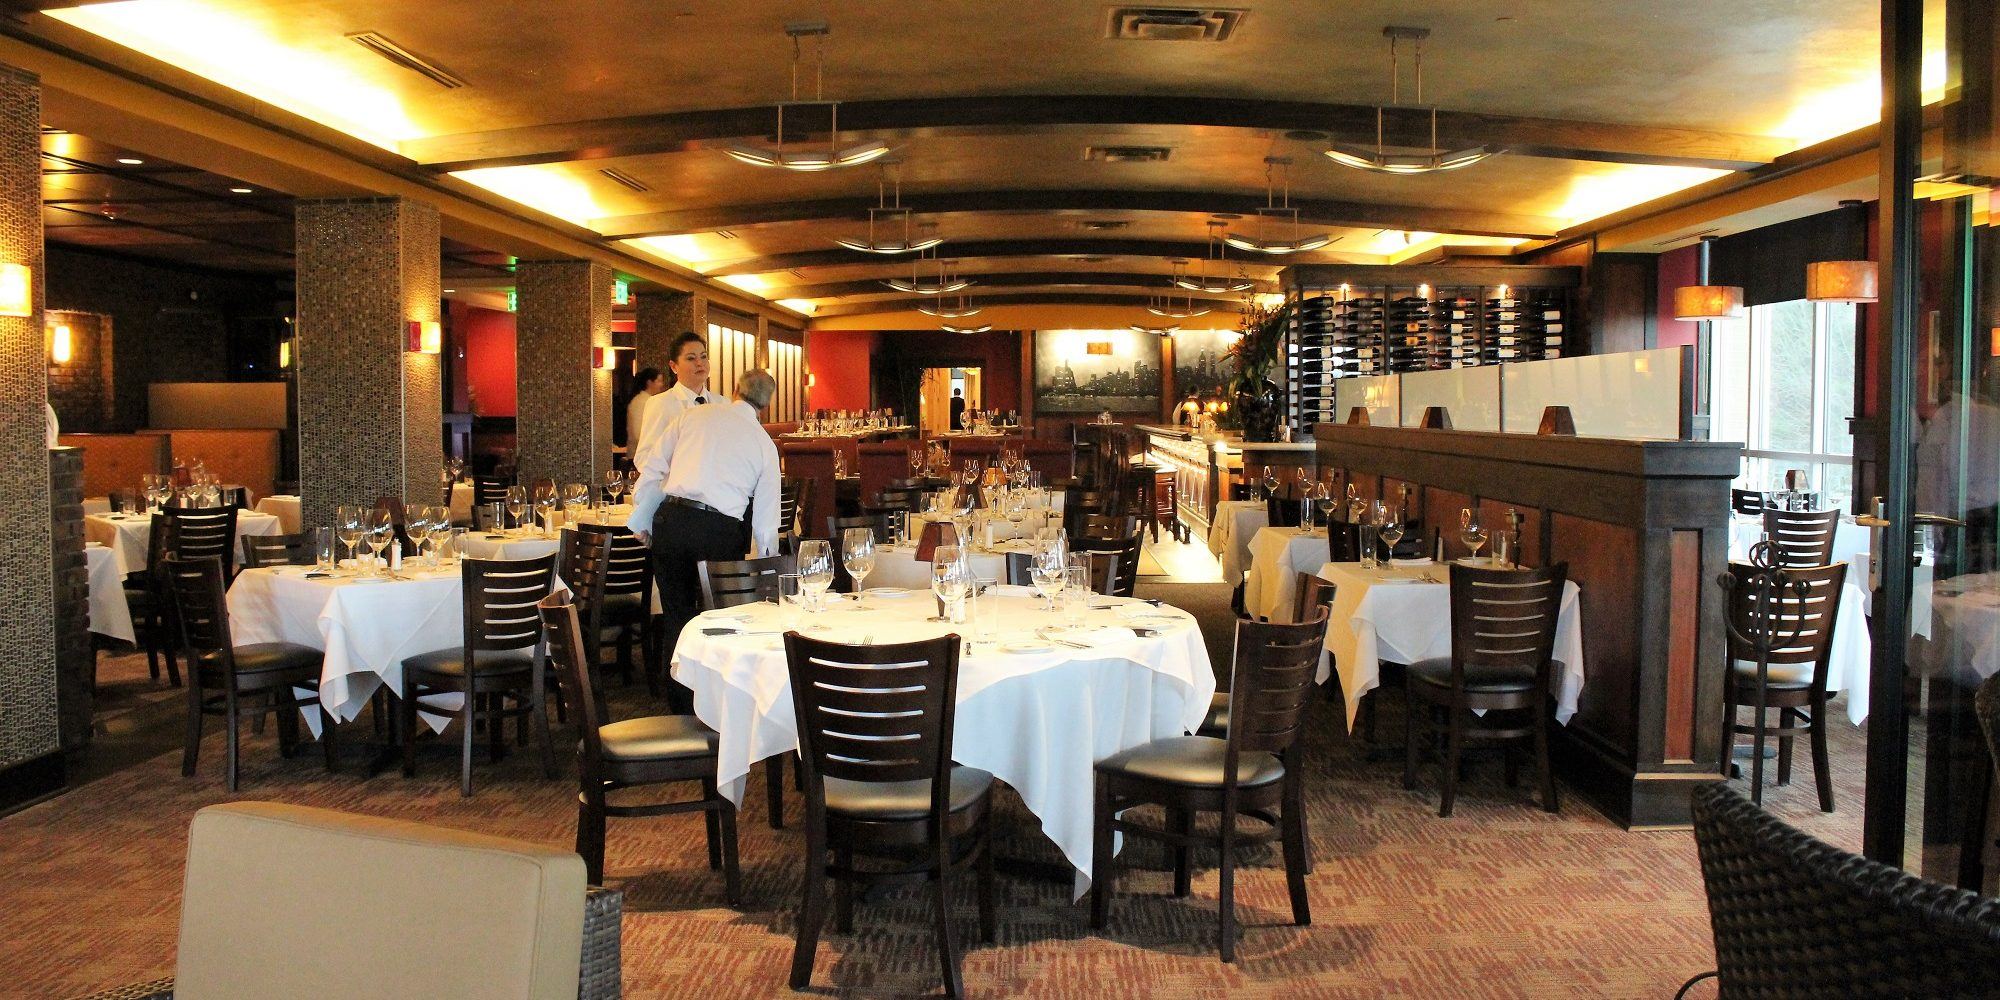 cook general contracting excels in two recent restaurant renovations